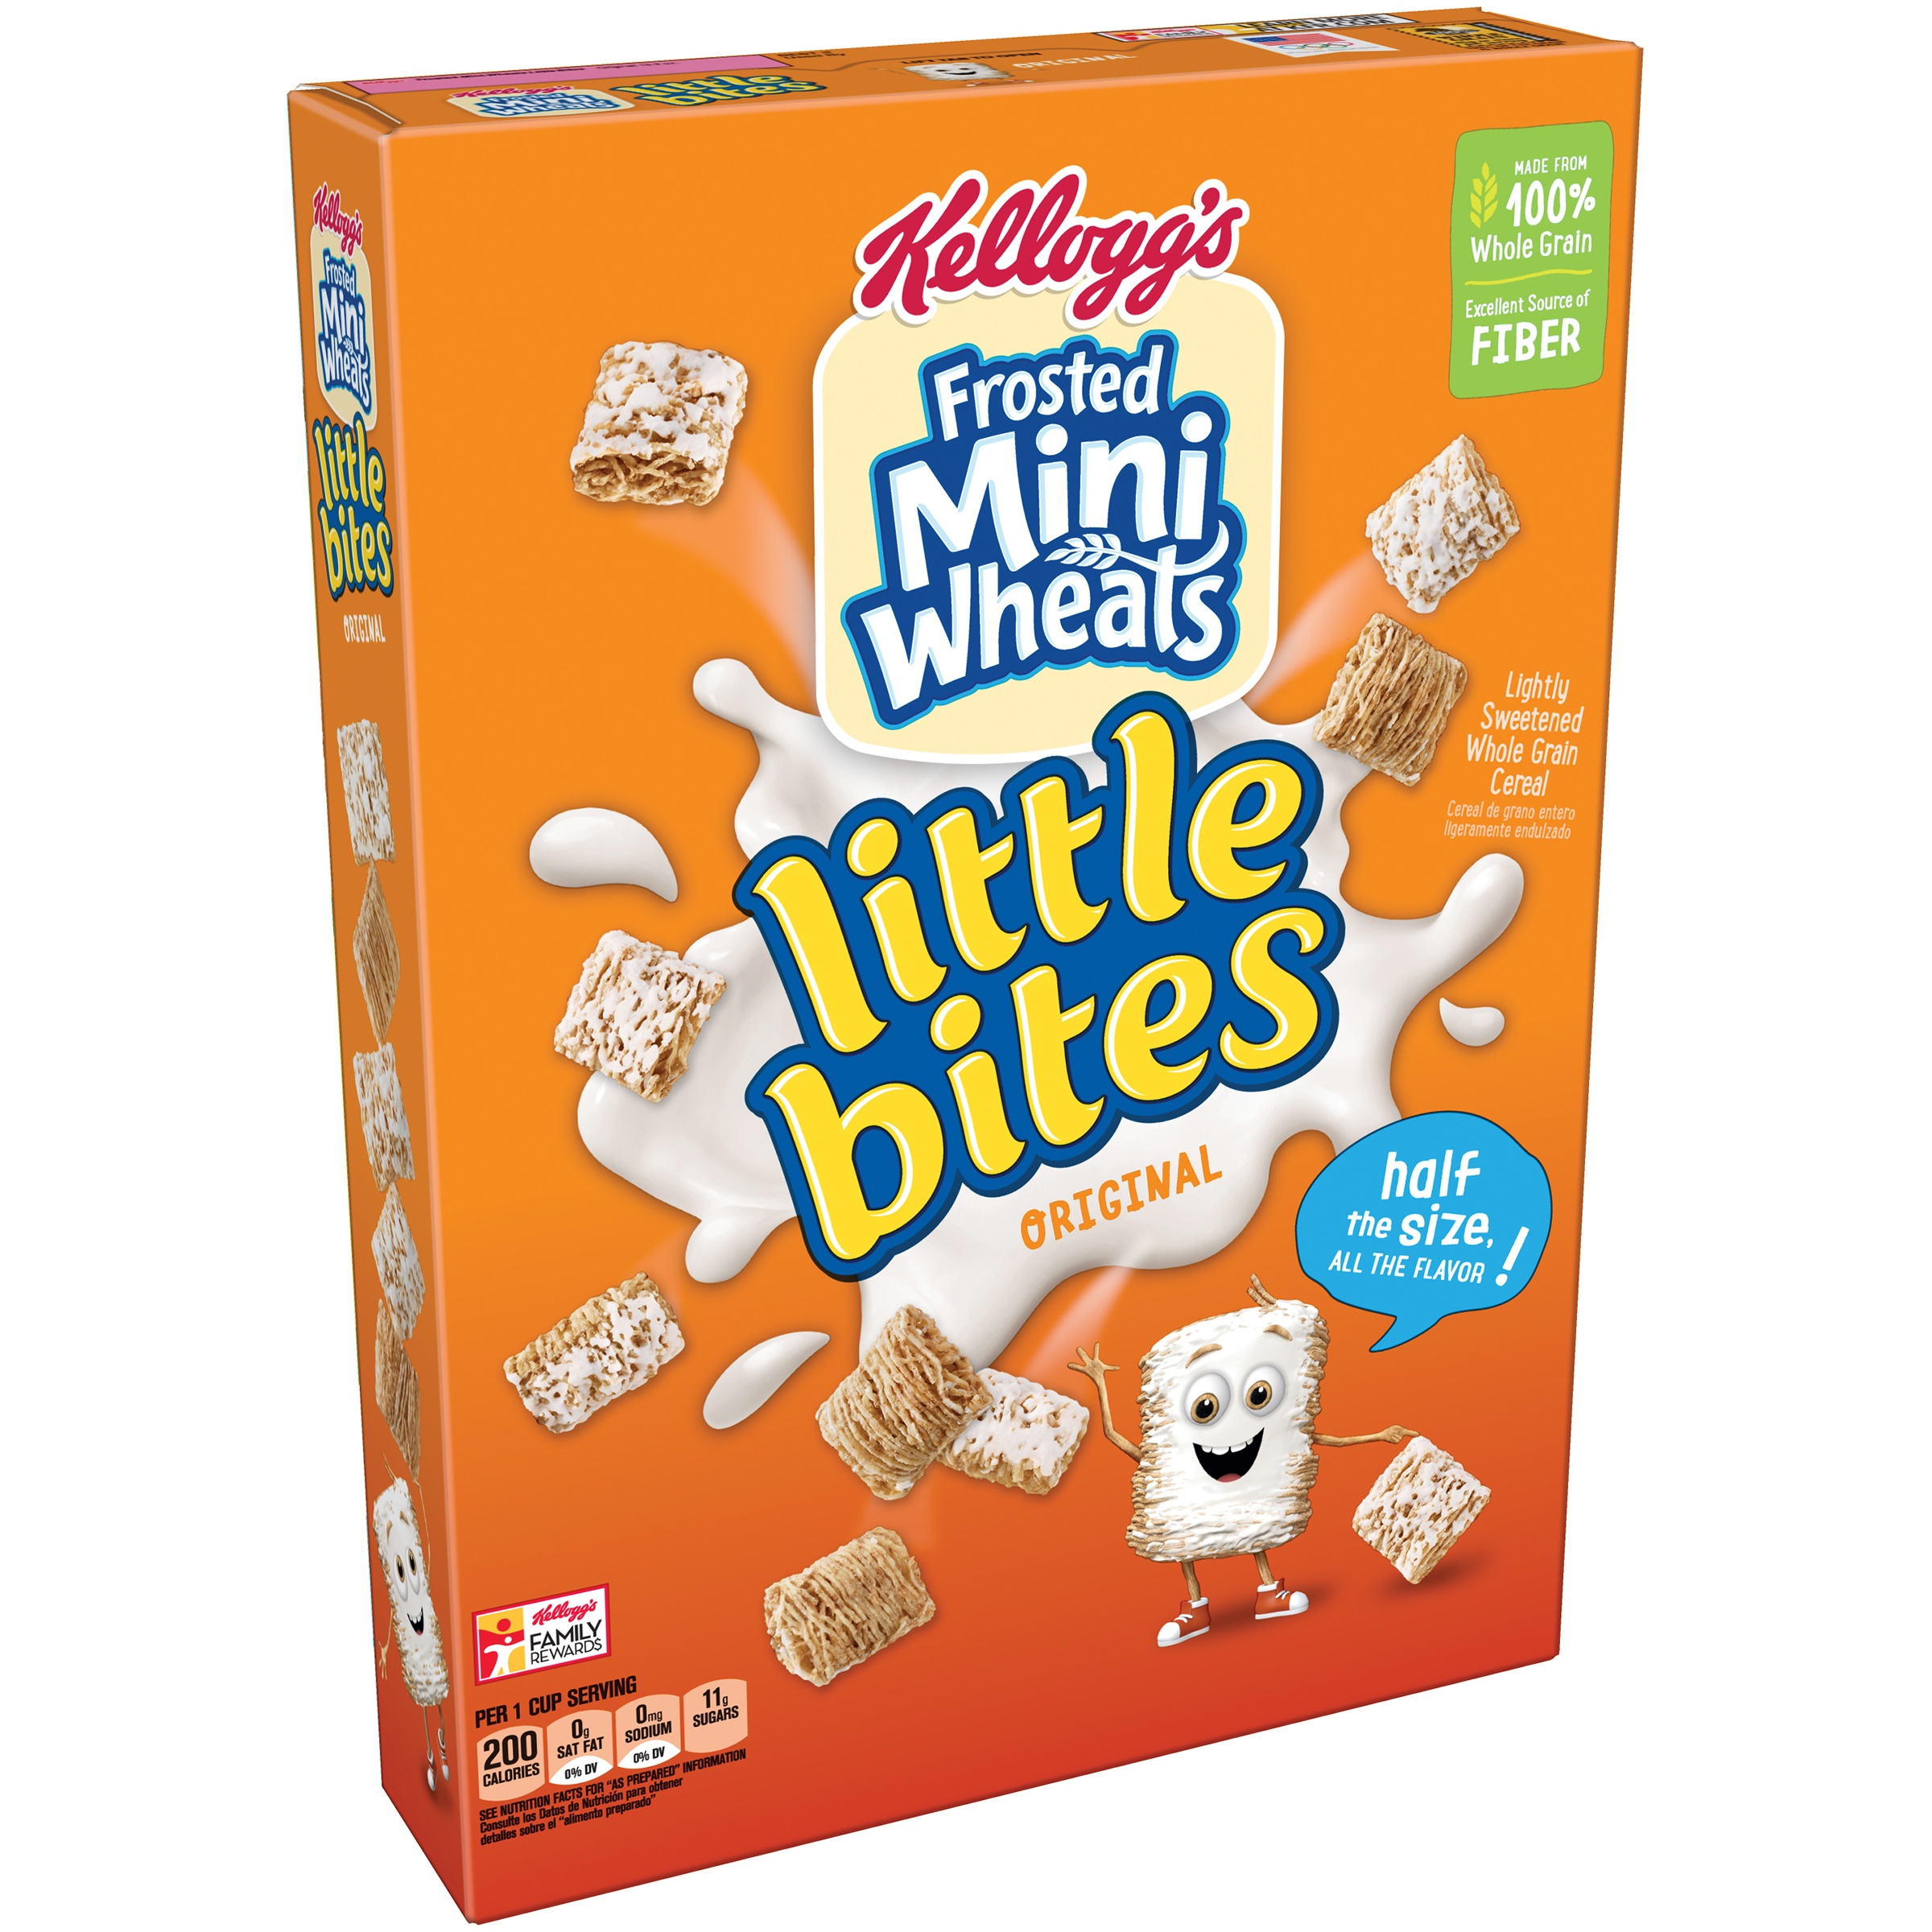 Kellogg's Frosted Mini-Wheats Little Bites Original Cereal, 15.2 oz